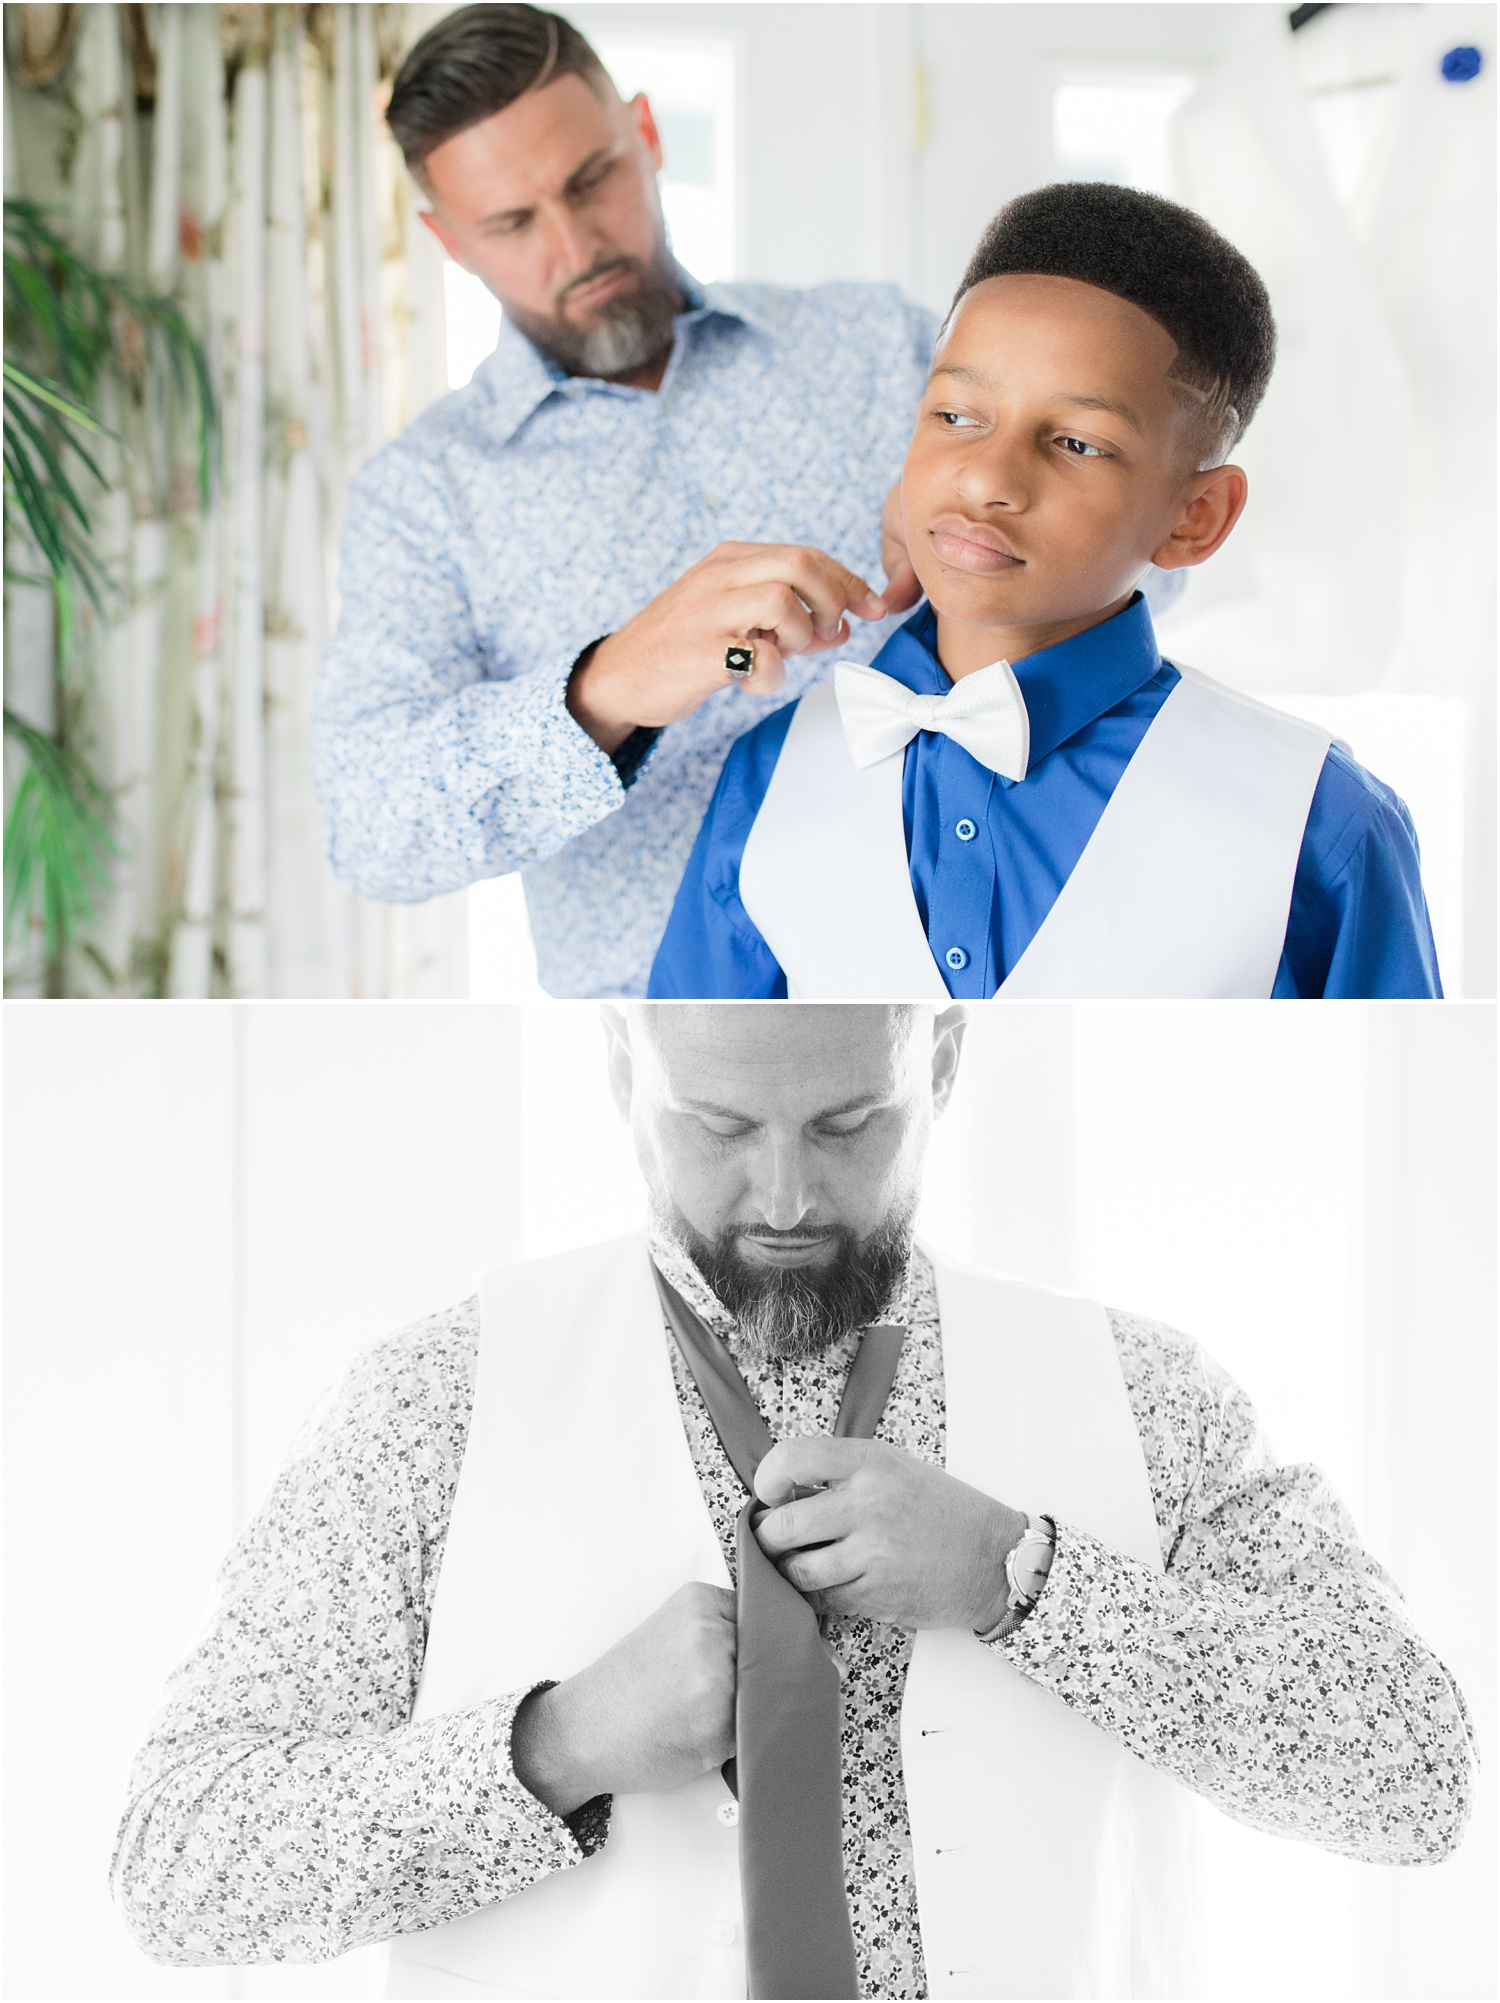 Groom helping Step-son get dressed for a wedding in Chesapeake City, MD.